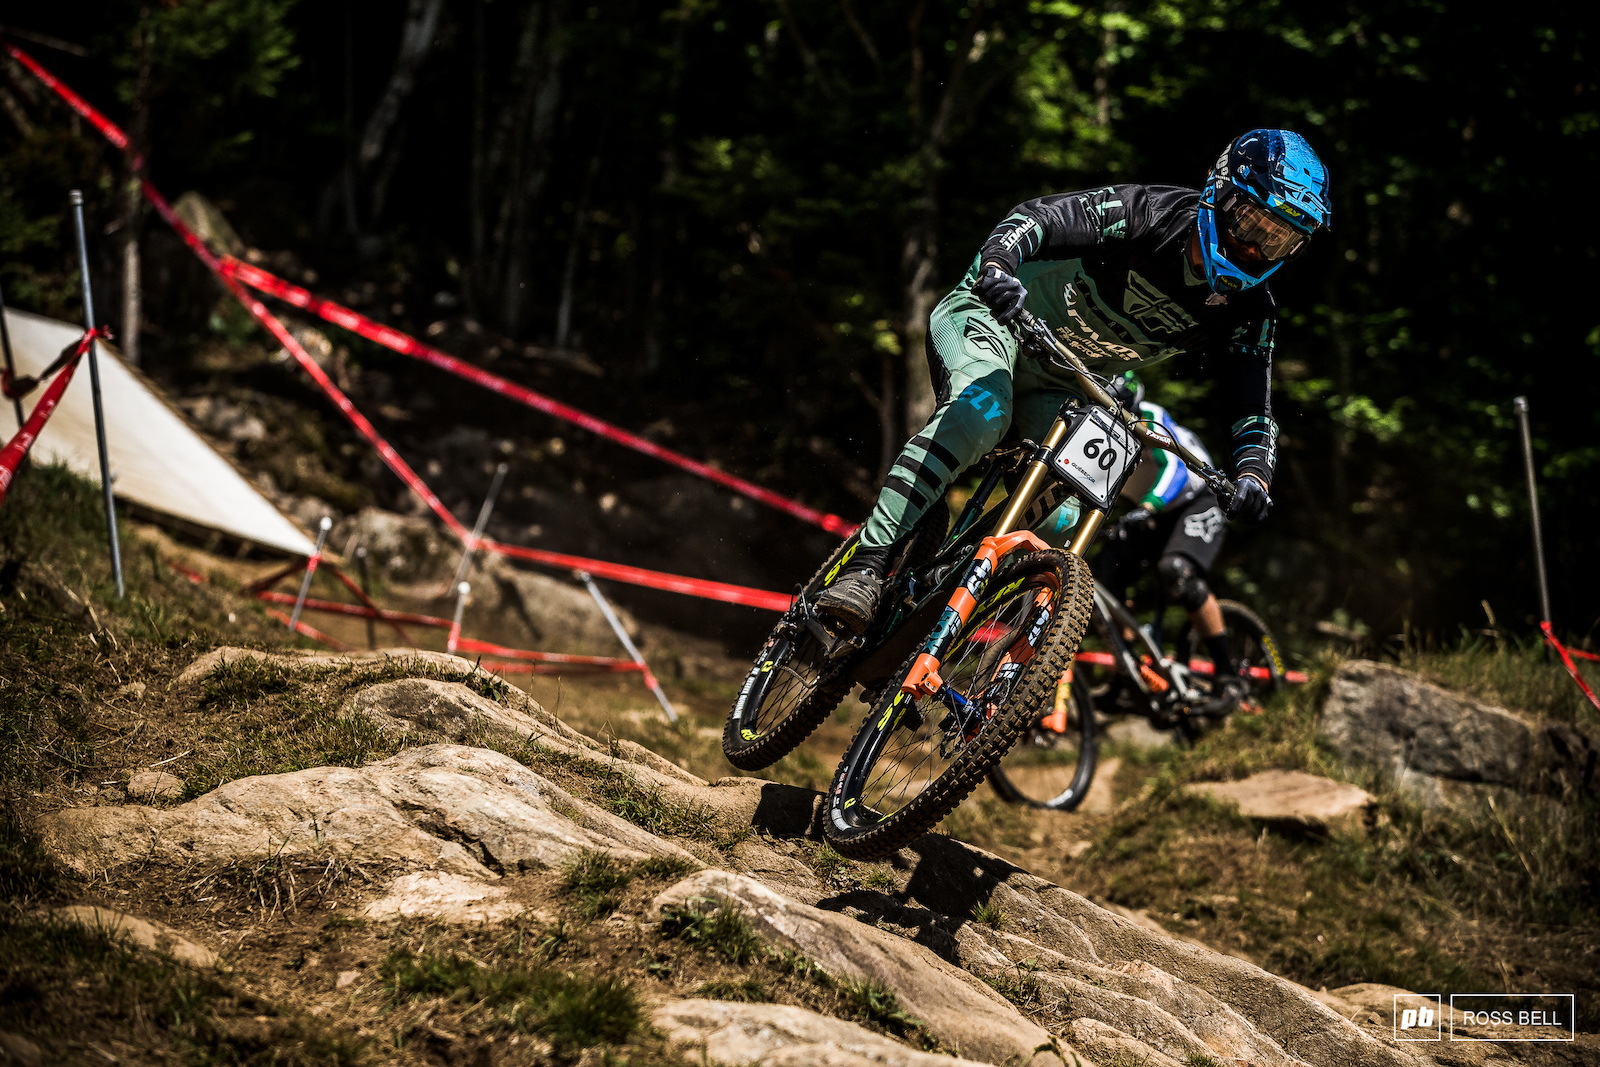 That s the best showing for Matt Walker on the downhill bike for some time. 11th place for the Kiwi.